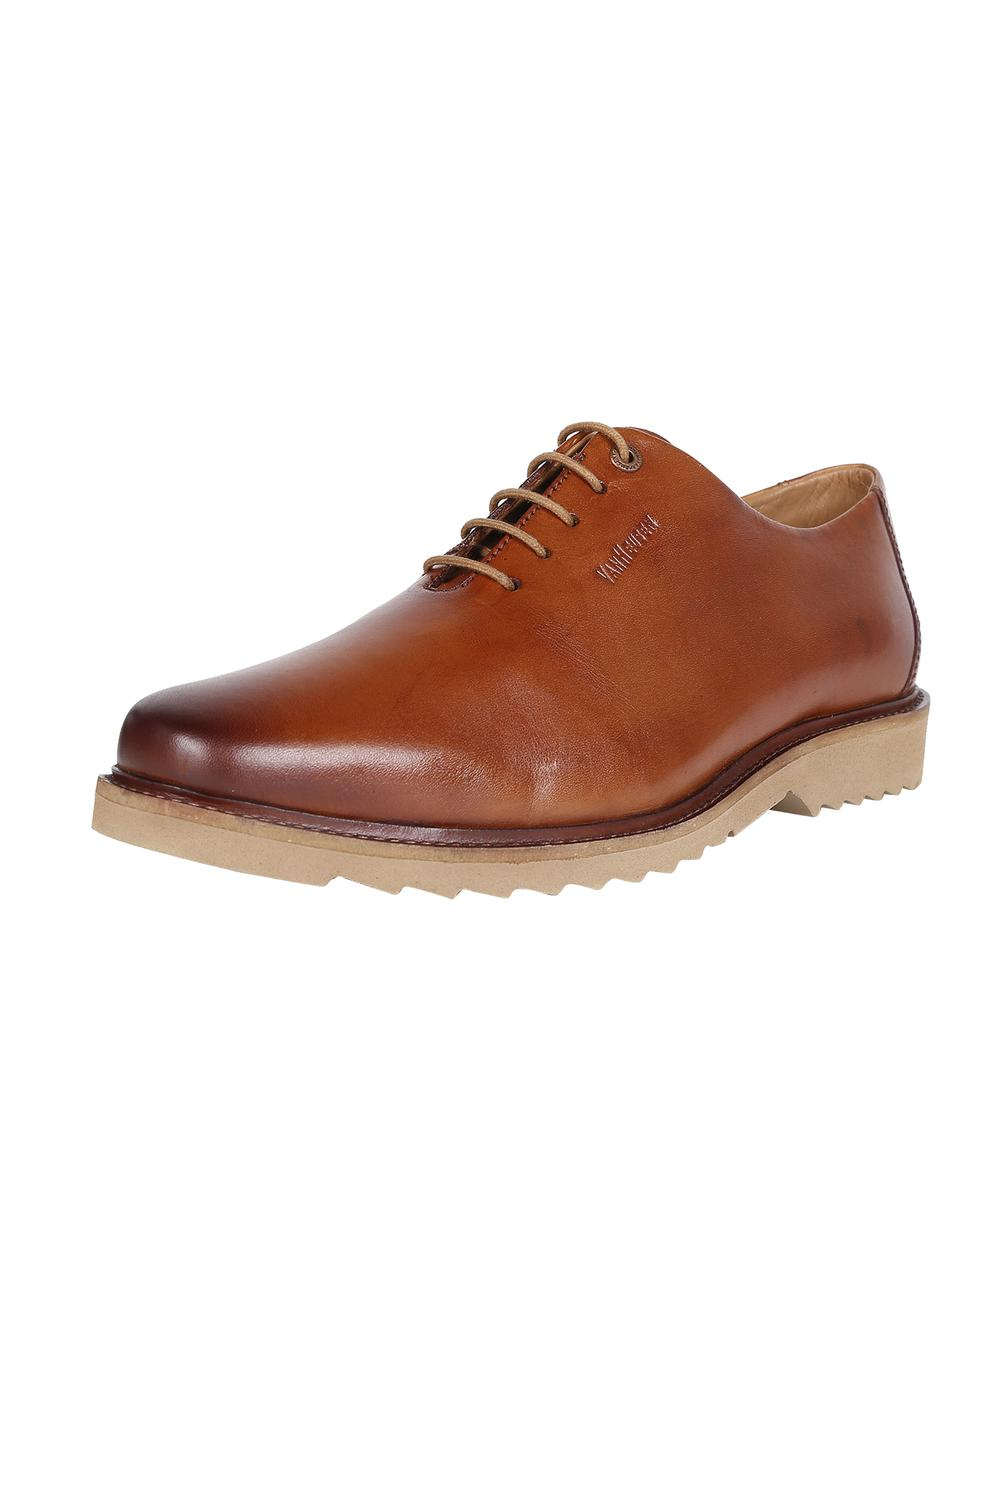 d00a03ae94b Van Heusen Brown Lace Up Shoes